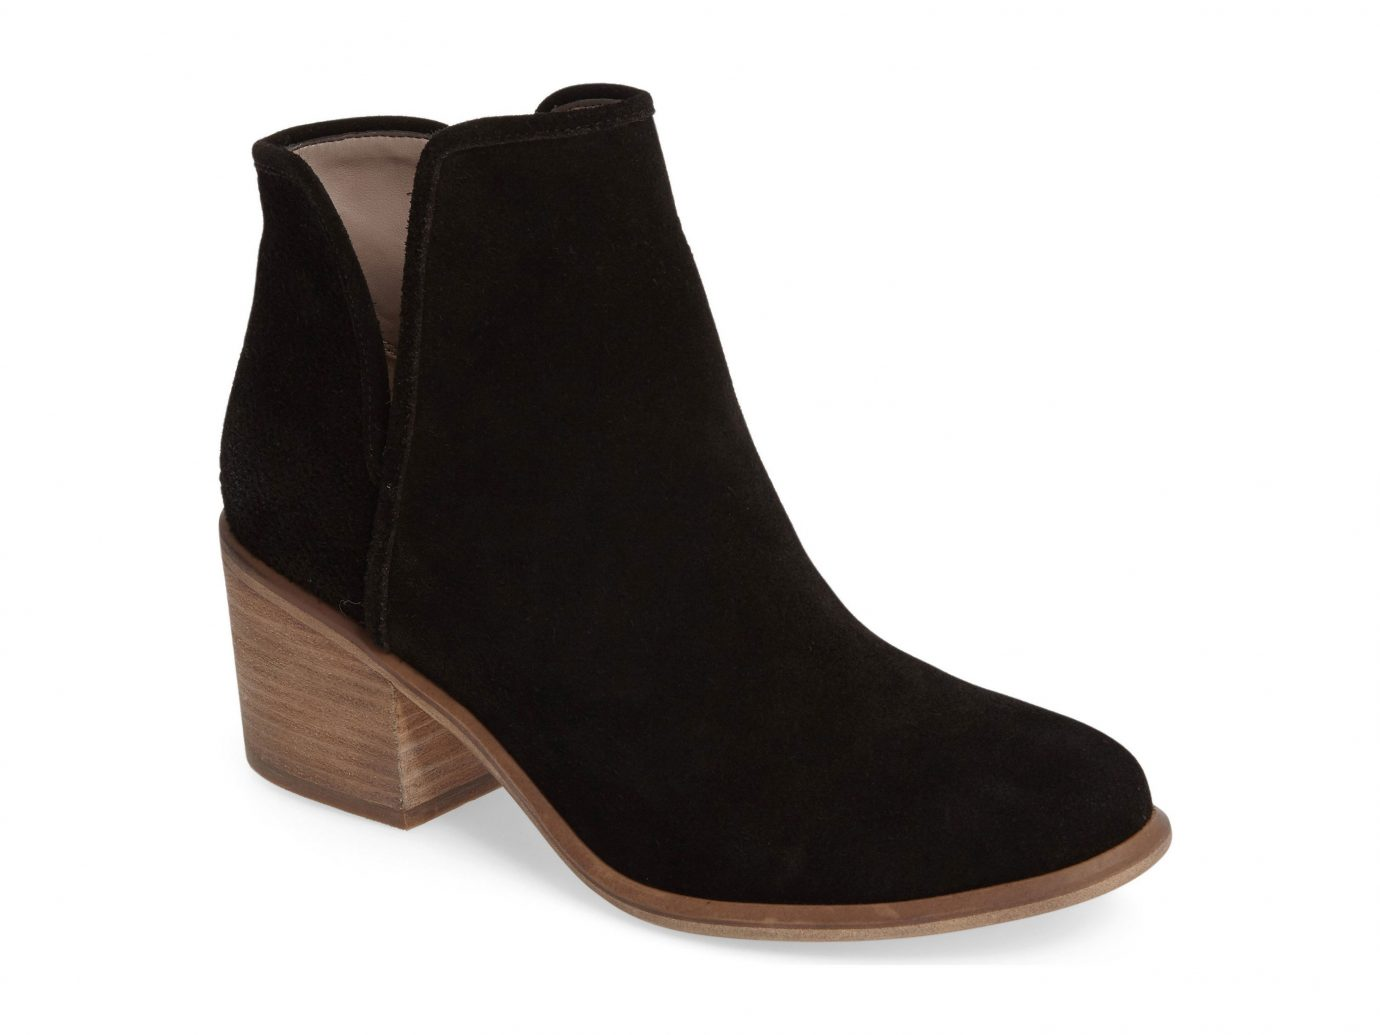 City NYC Style + Design Travel Shop clothing footwear brown boot suede black shoe high heeled footwear leather product design shoes feet